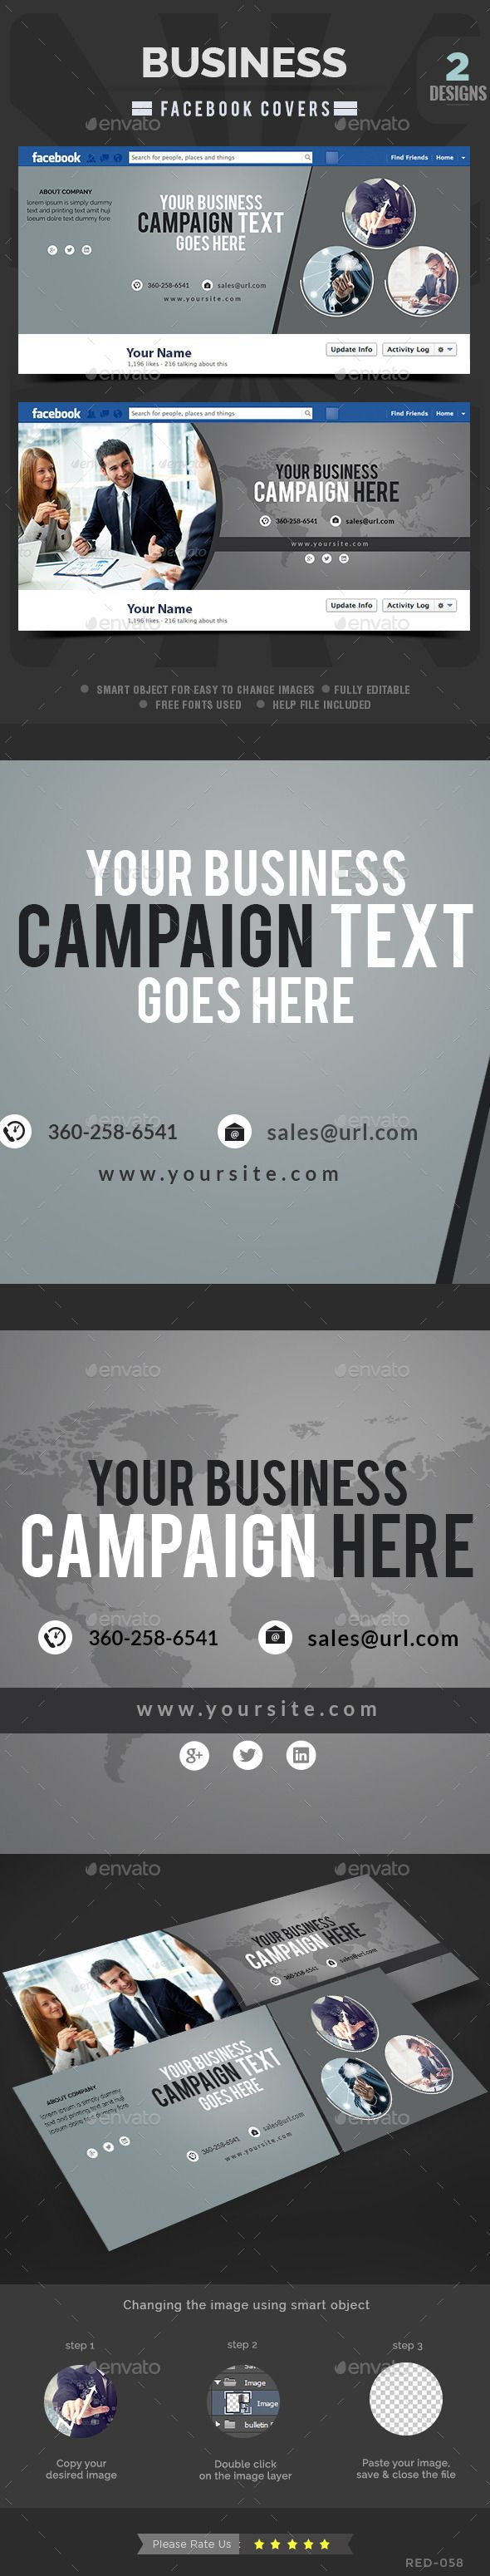 Business Facebook Facebook Covers - 2 Designs | Timeline covers ...